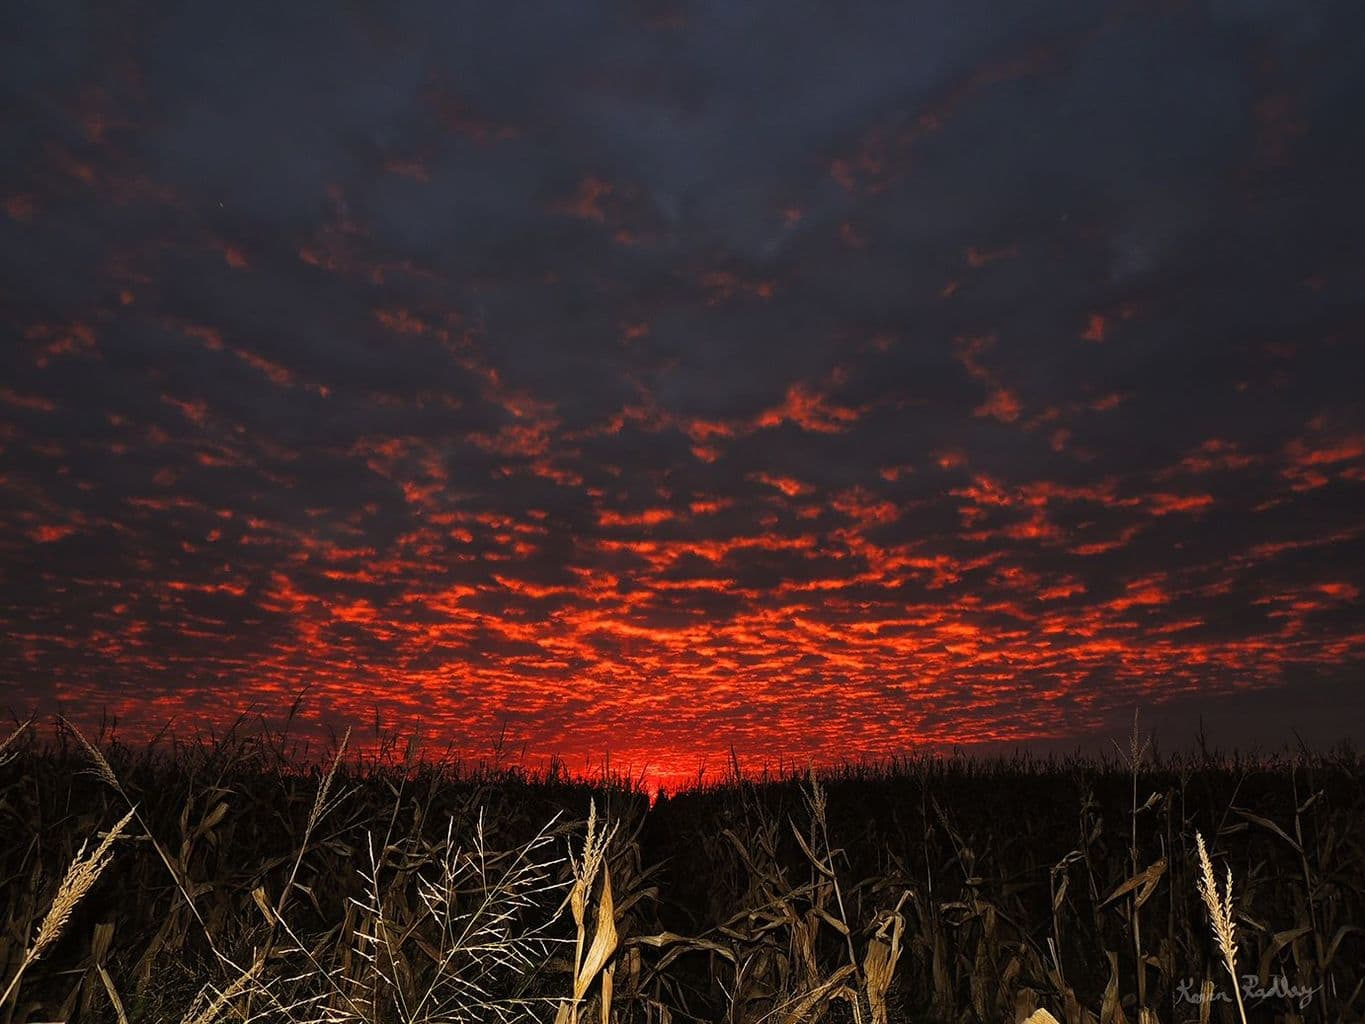 Sunset this evening behind an unharvested cornfield, in western Dewitt county, IL..6:52 pm.